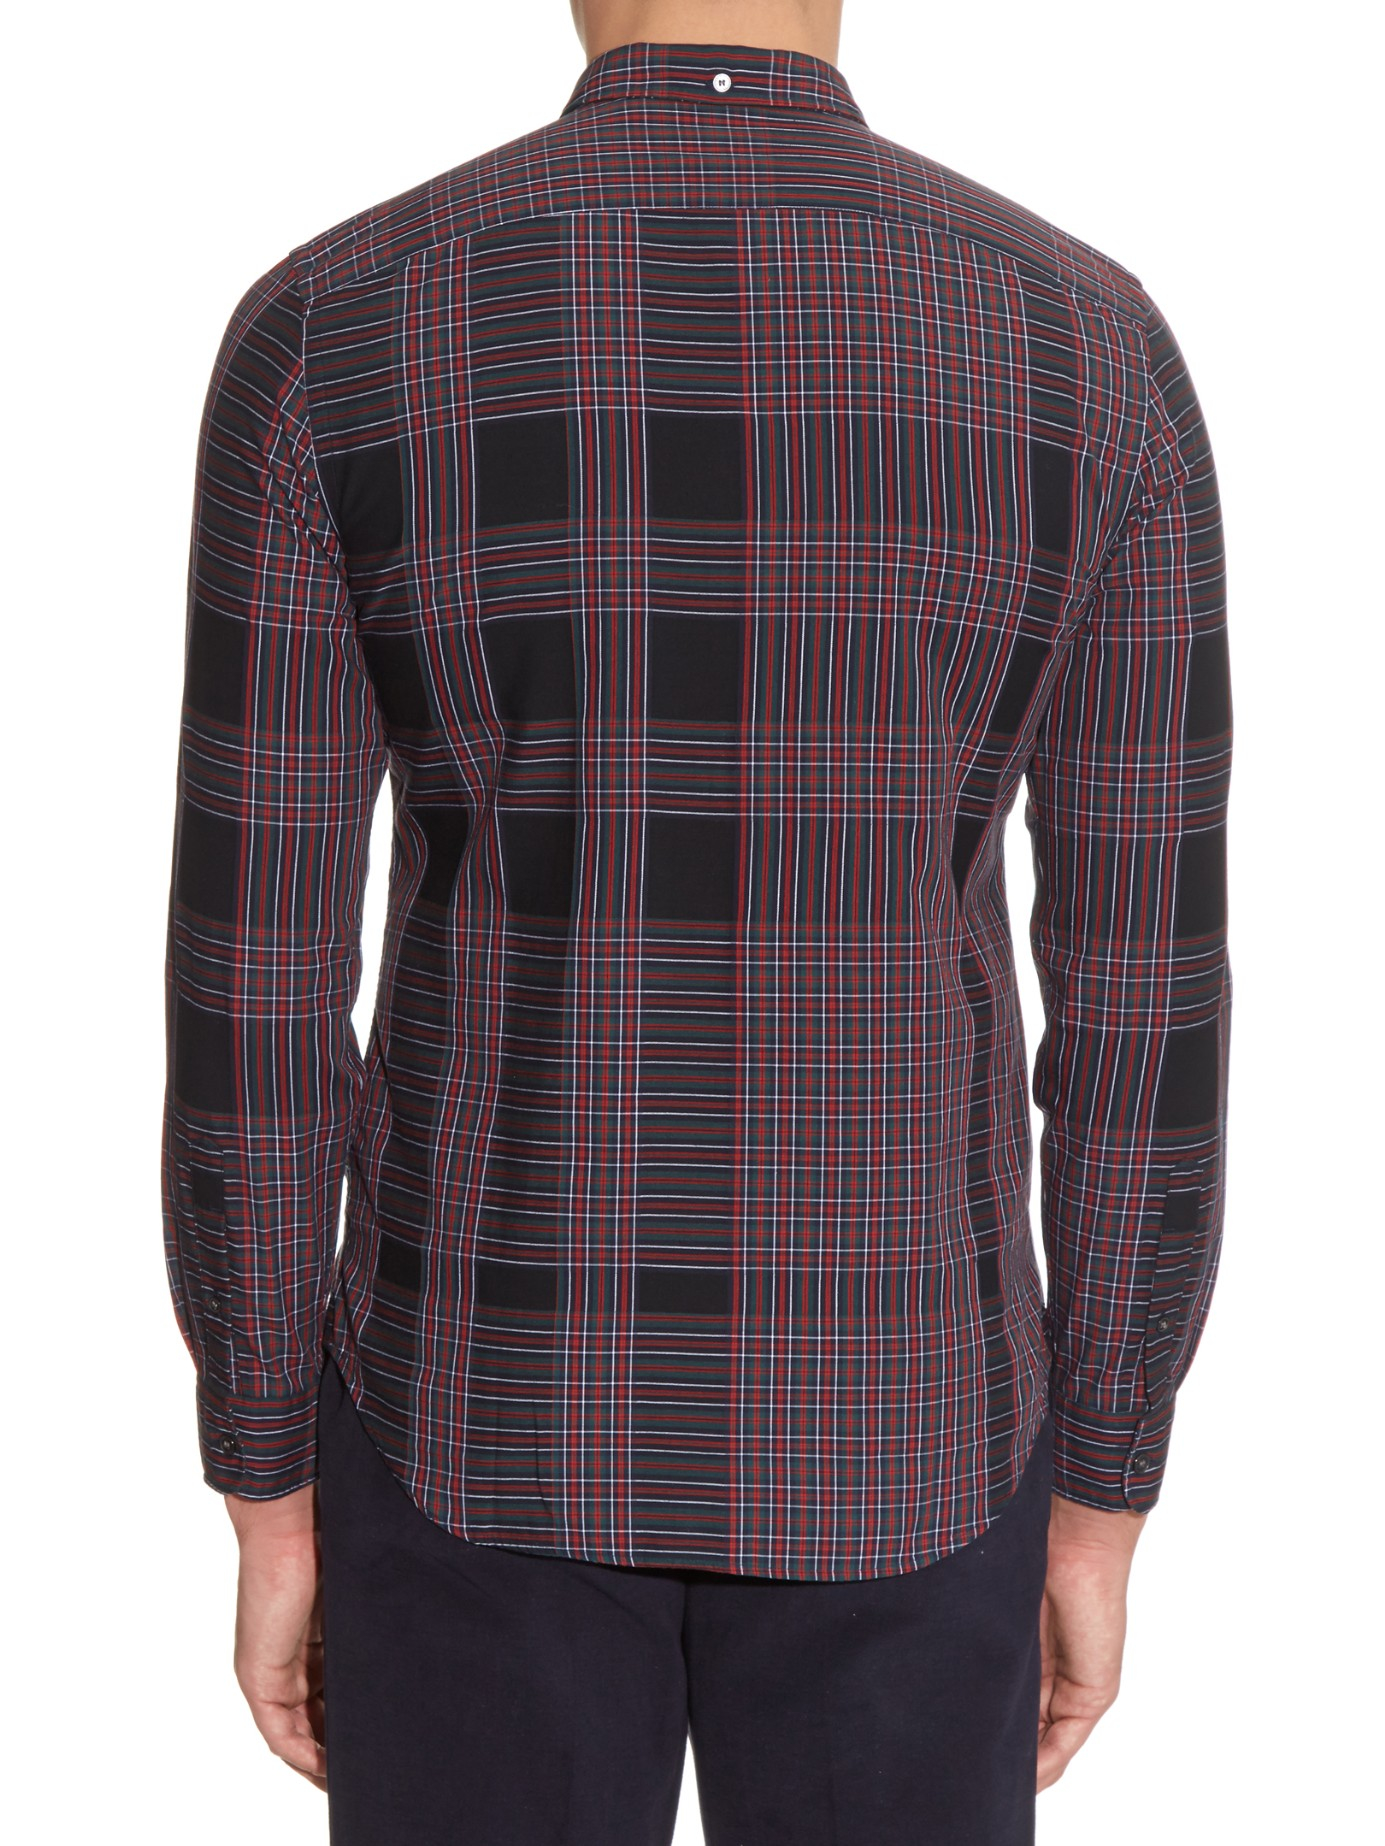 Burberry brit belgrave checked long sleeved shirt in black for Burberry brit checked shirt